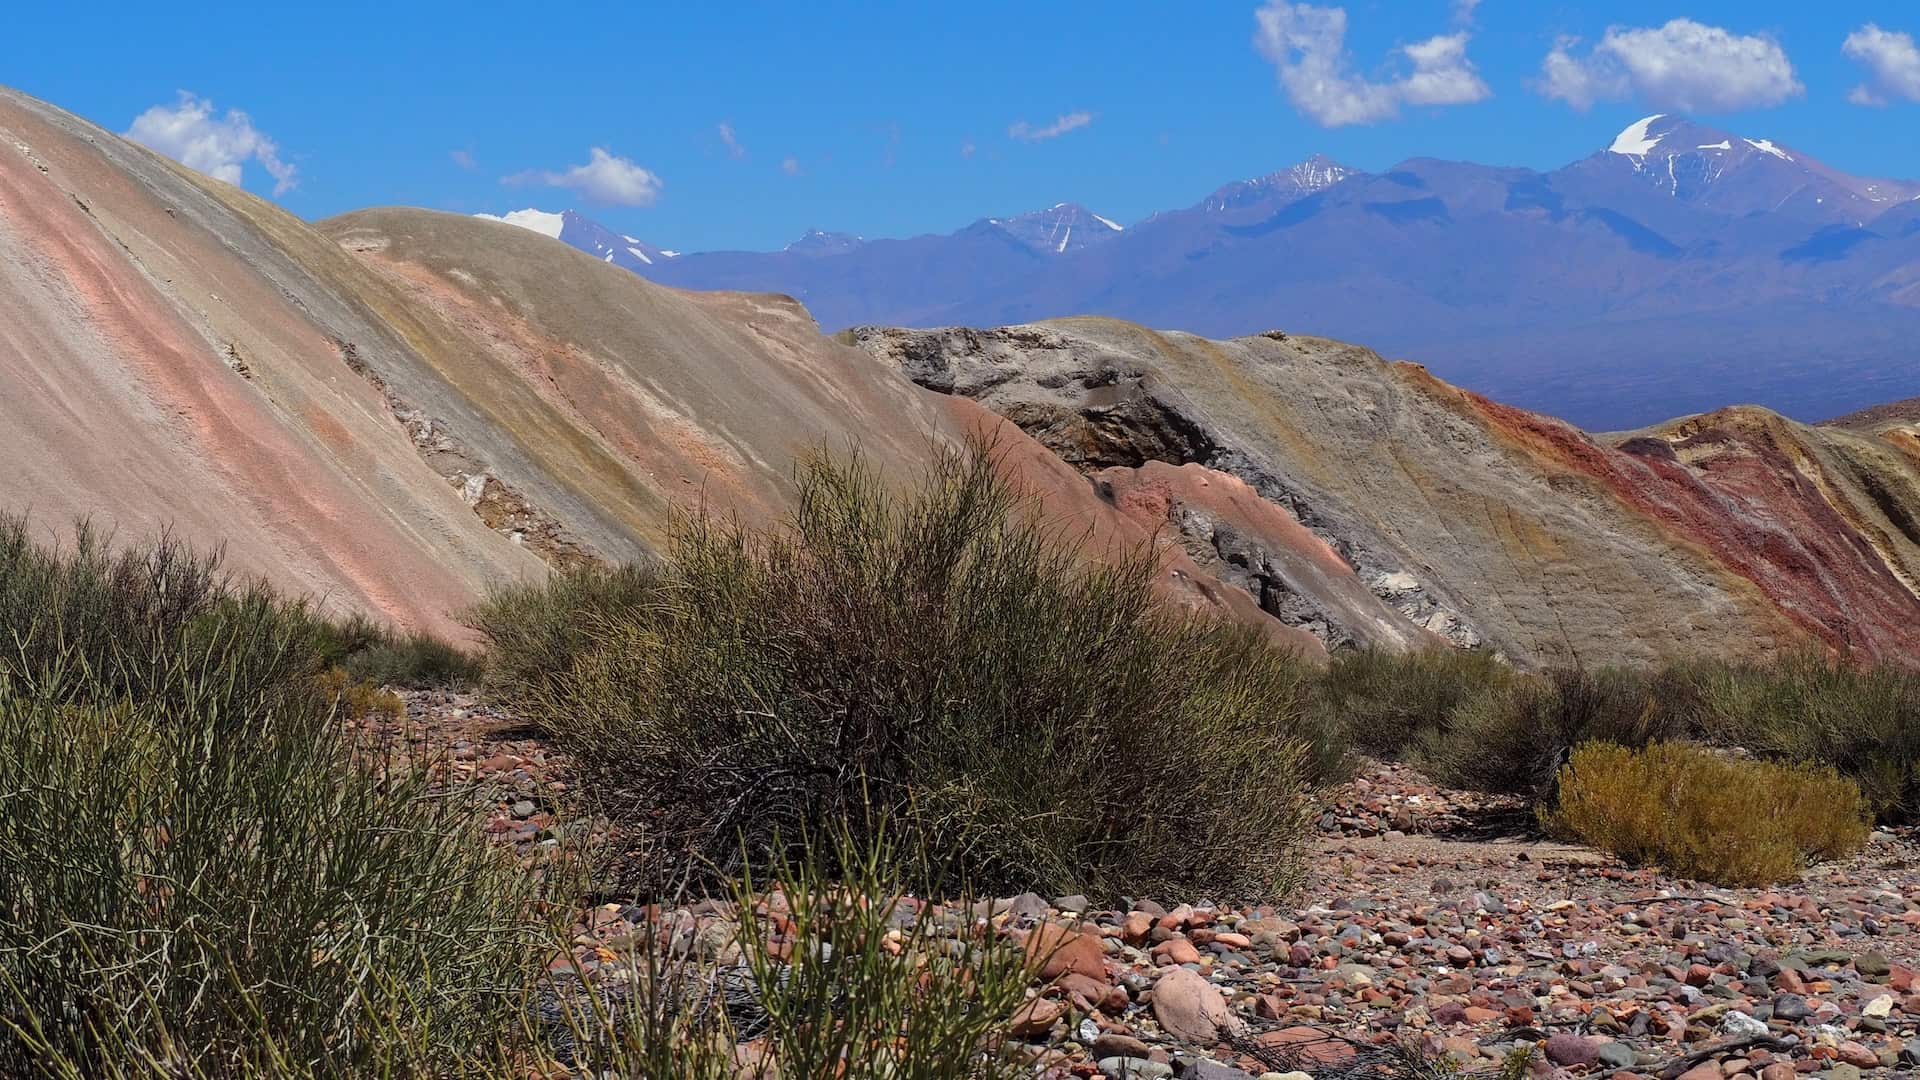 Multi-coloured hillsides in the foreground and snow-capped mountains in the background